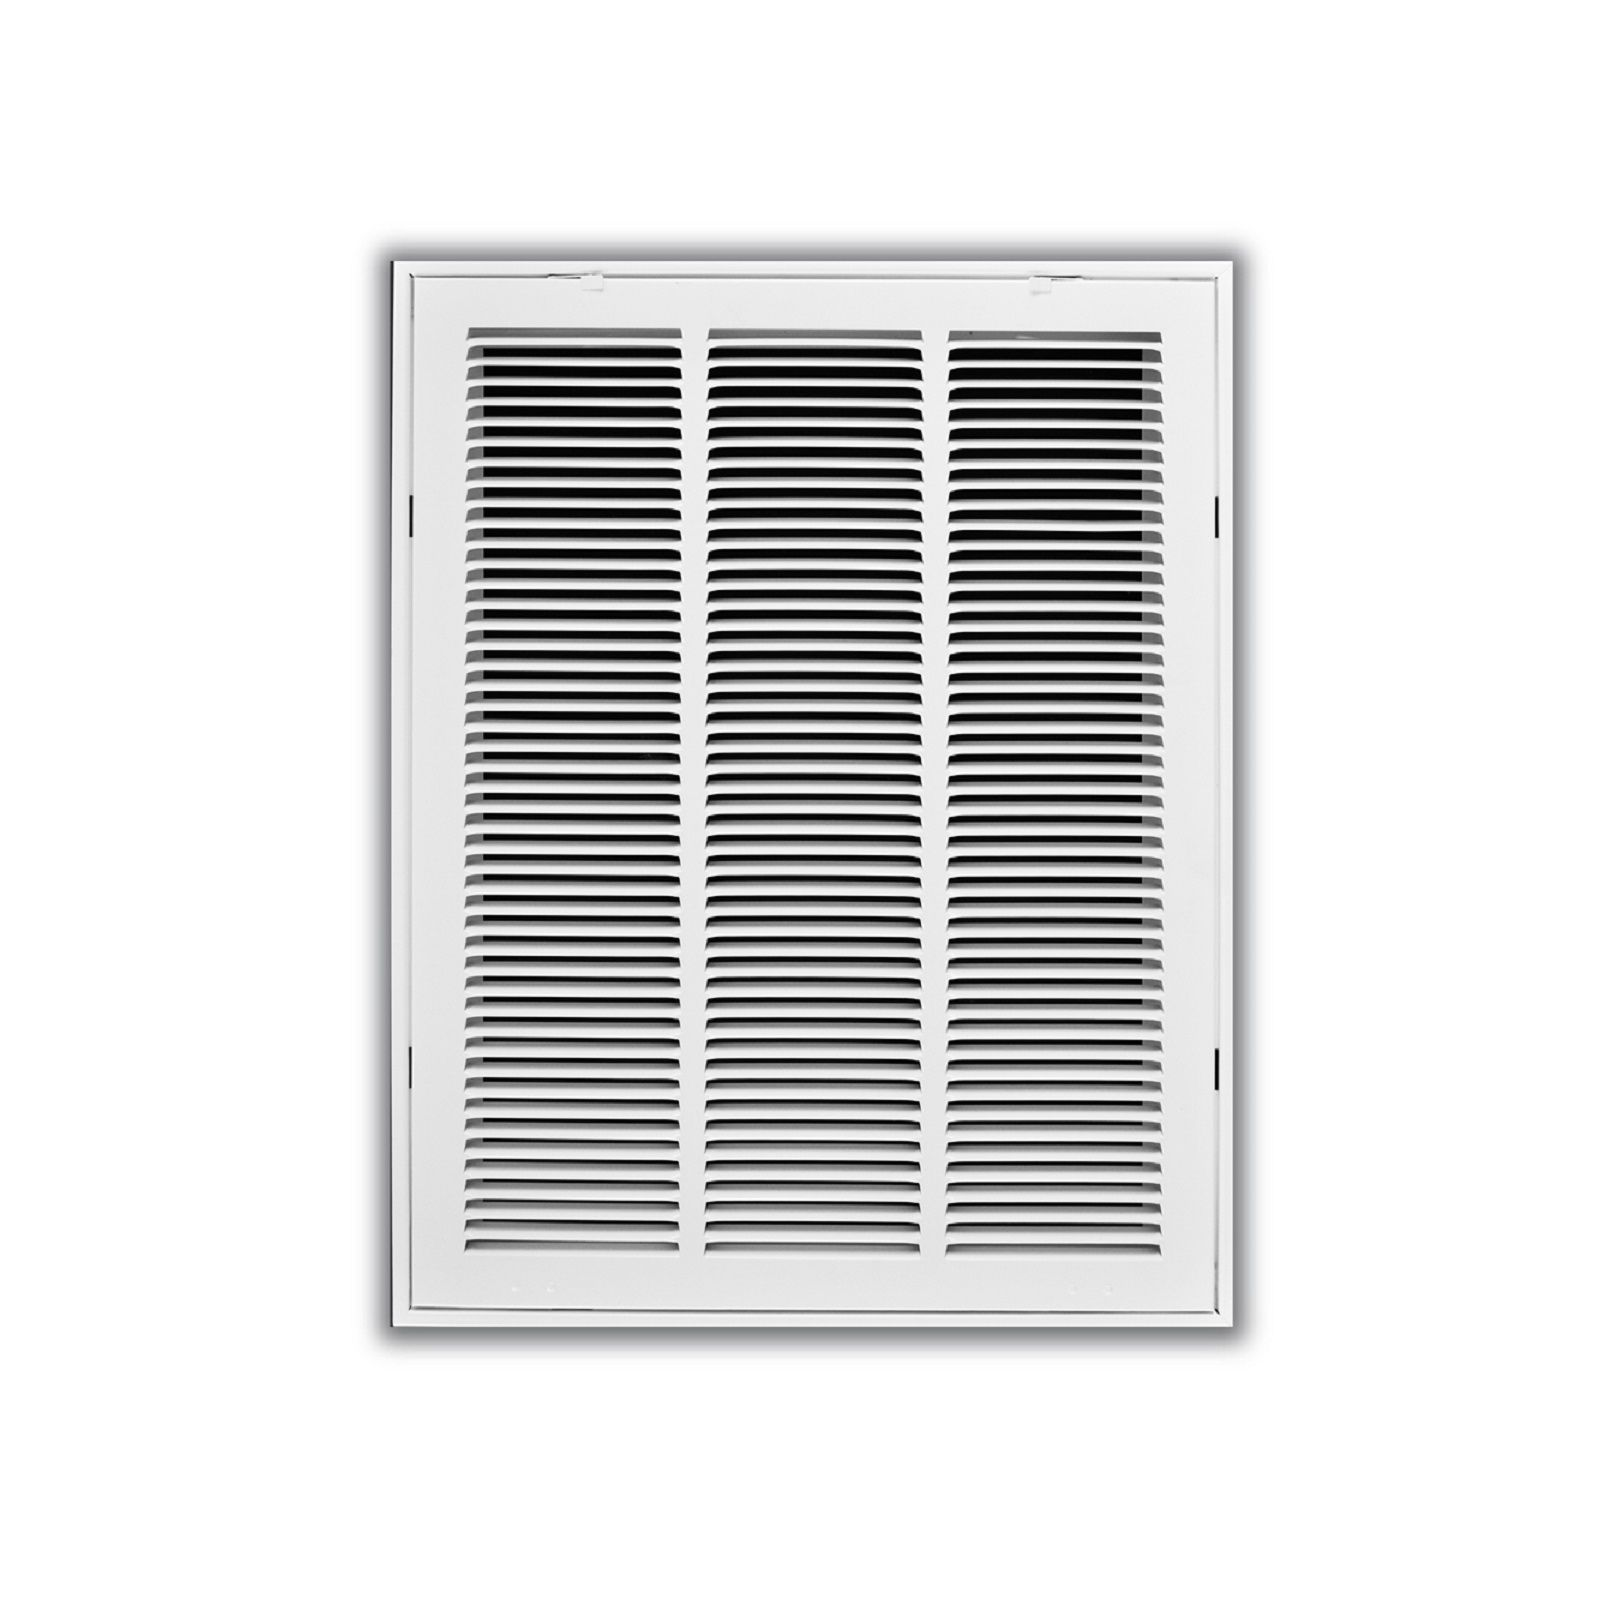 "TRUaire 190 30X06 - Steel Return Air Filter Grille With Fixed Hinged Face, White, 30"" X 06"""